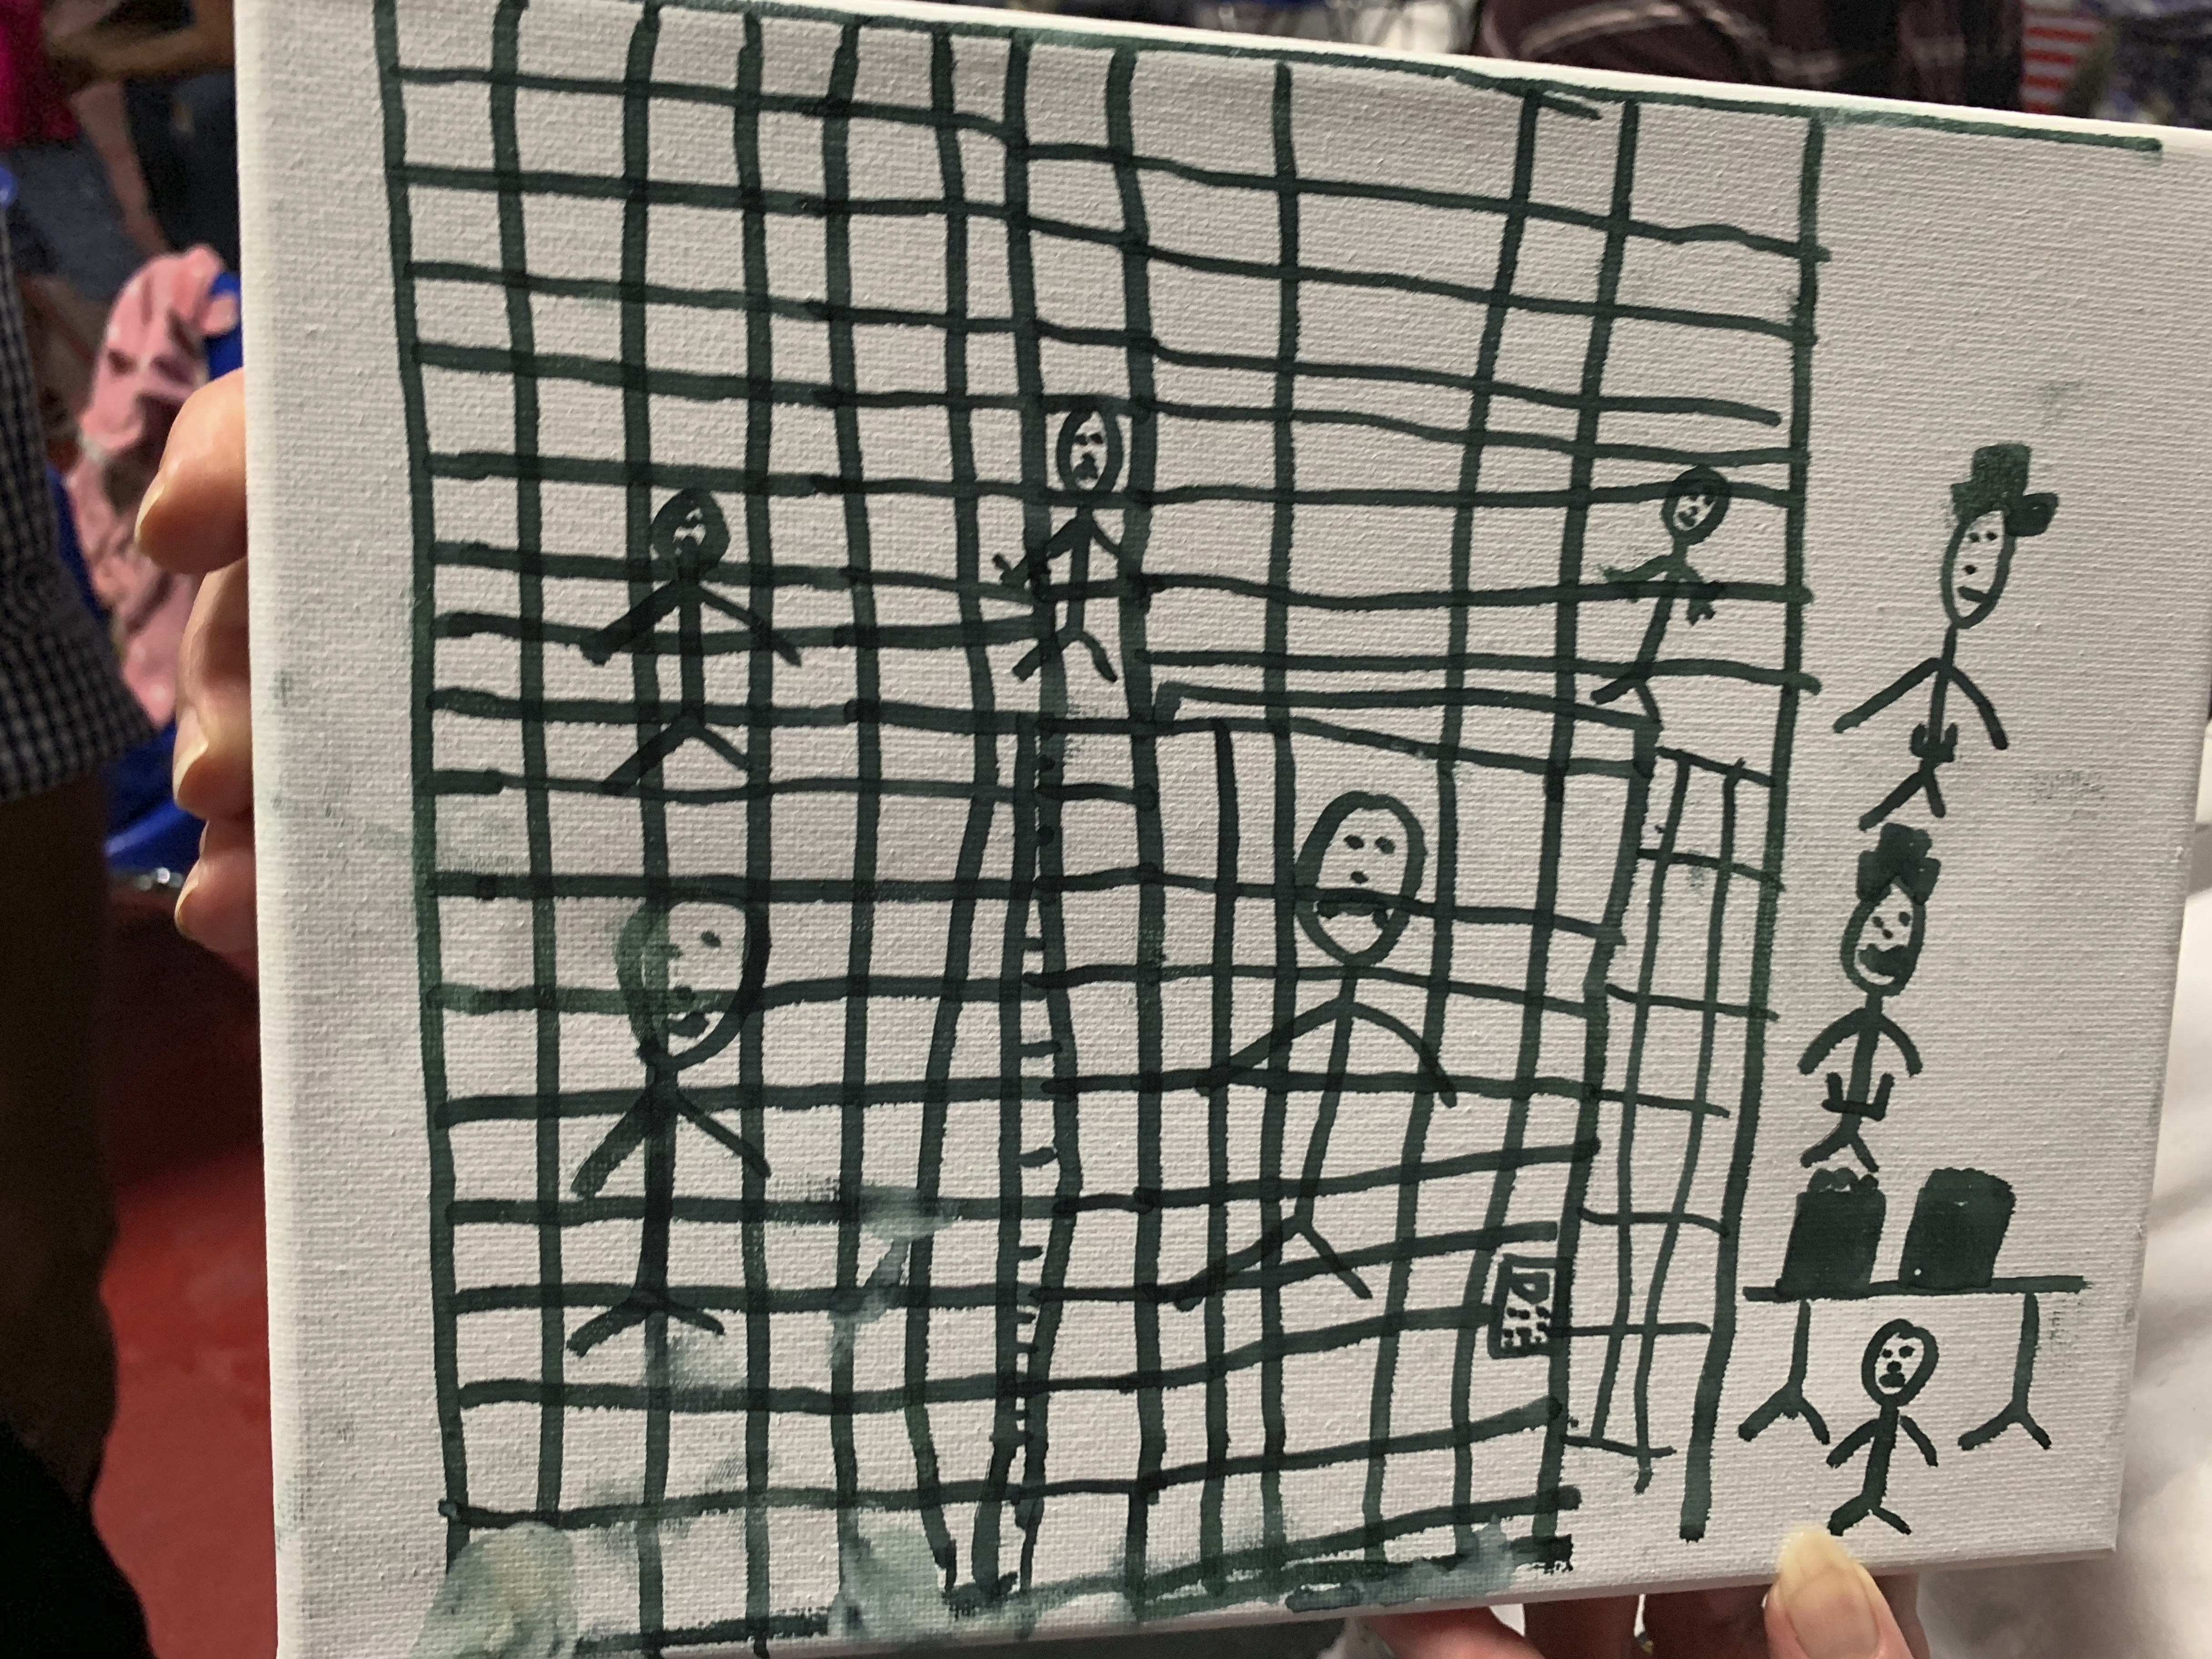 Smithsonian Museum Considers Collecting Drawings Made By Detained Migrant Children